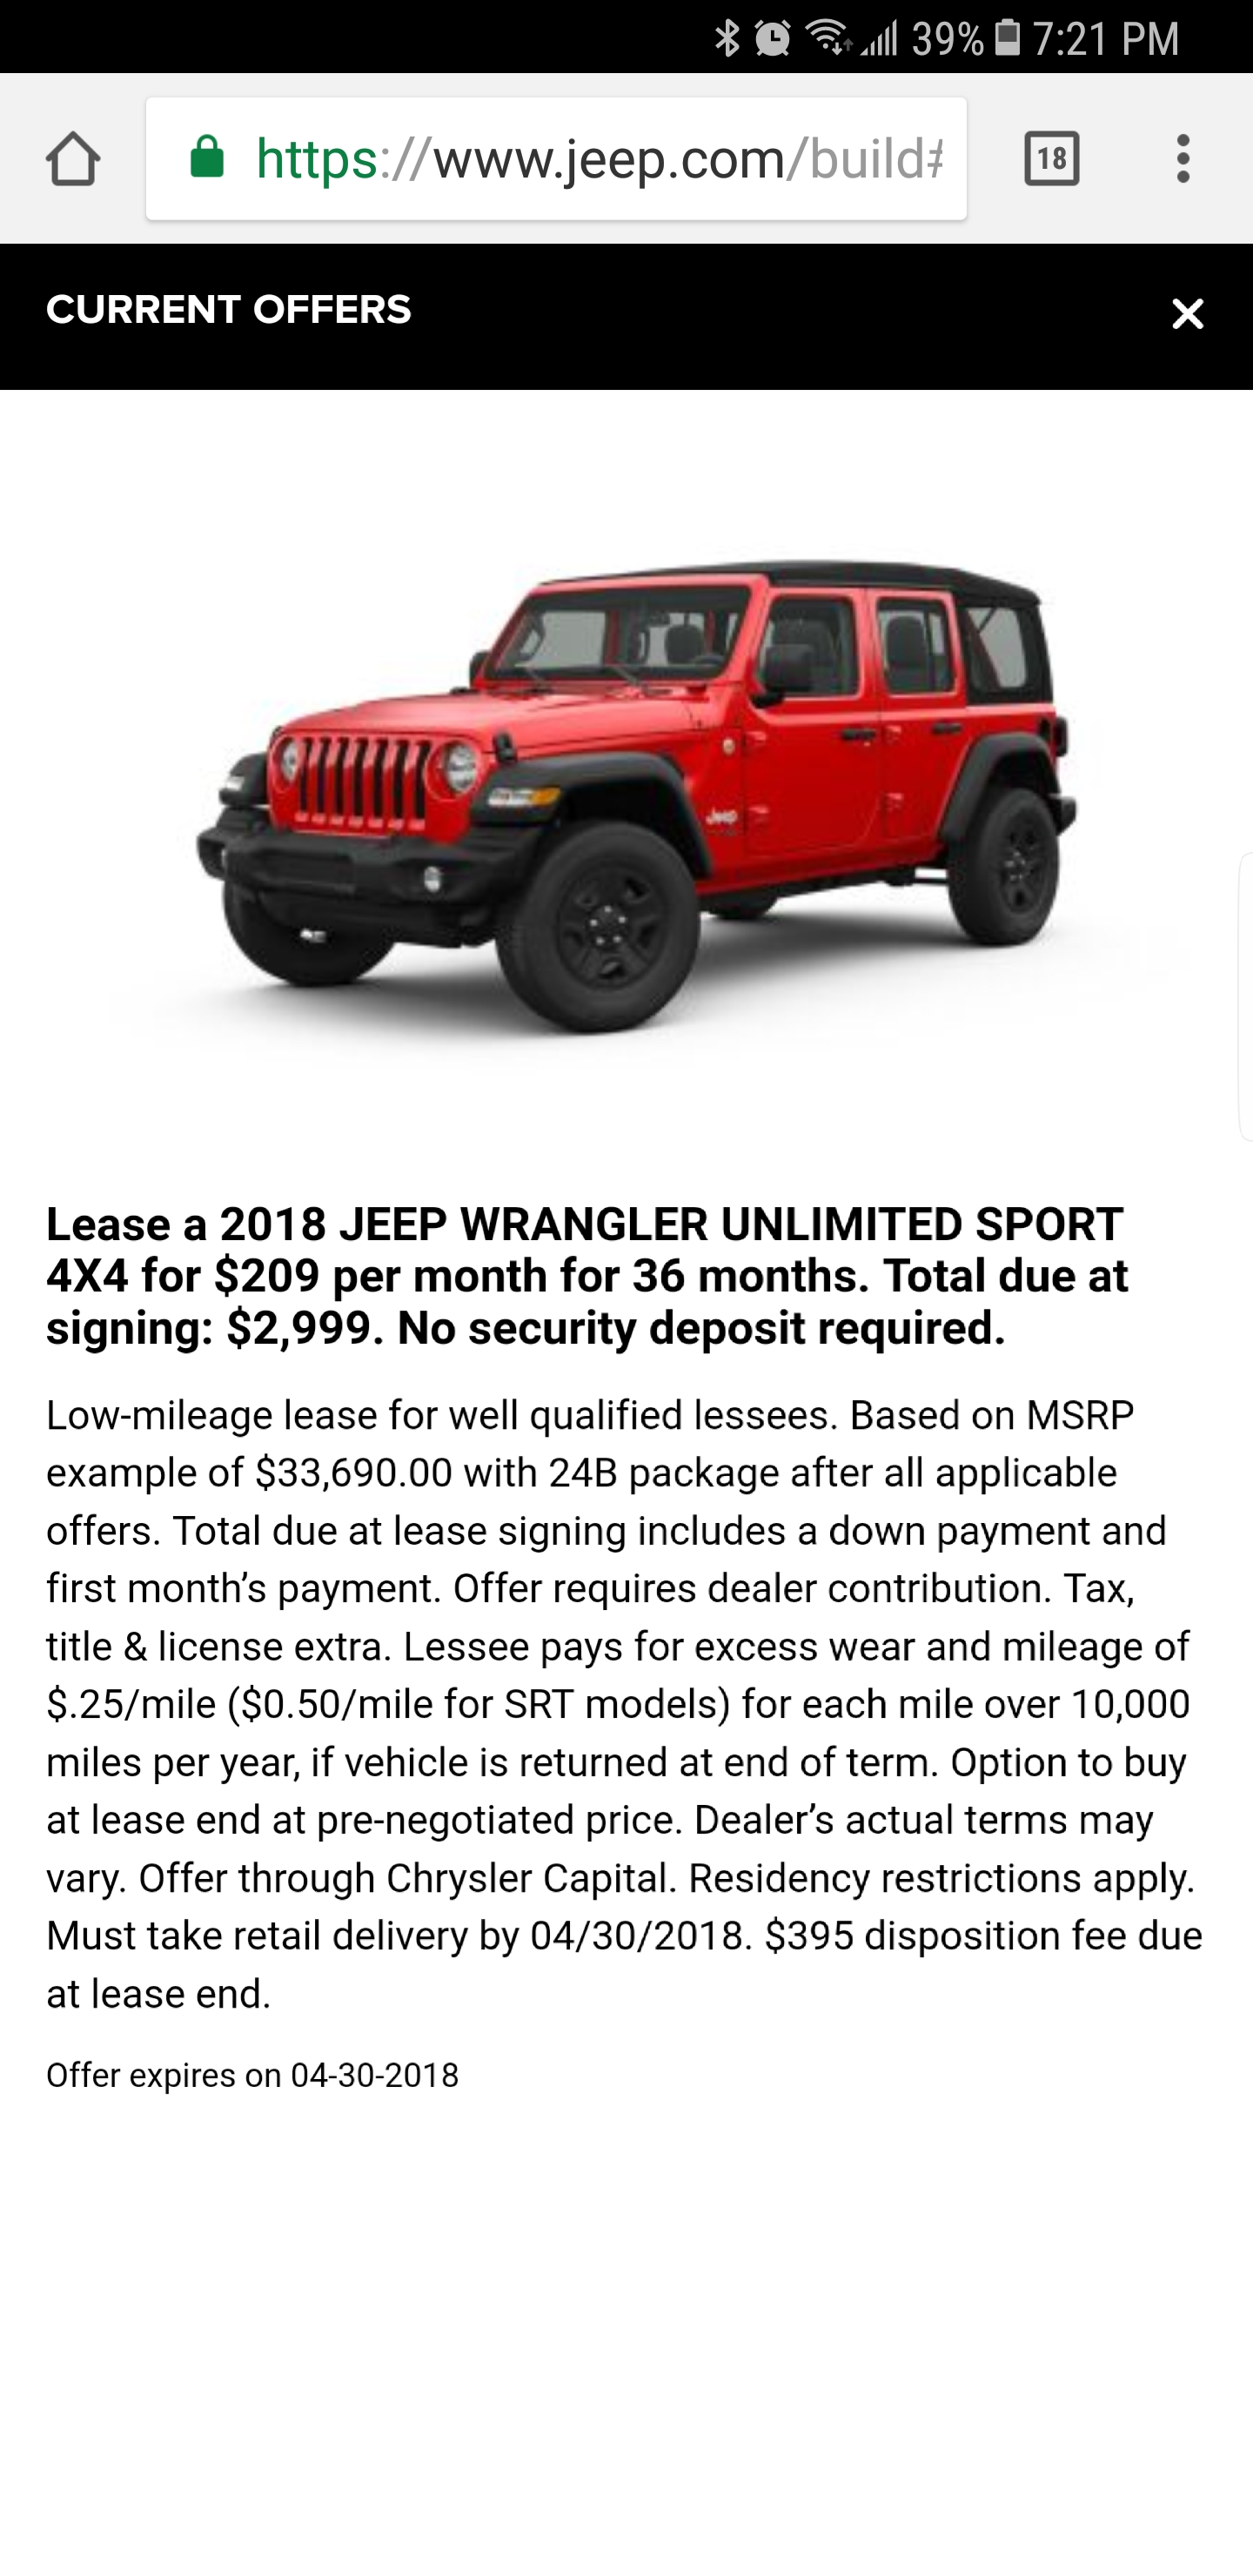 2018 Jeep Wrangler Lease Deals and Prices Page 16 — Car Forums at